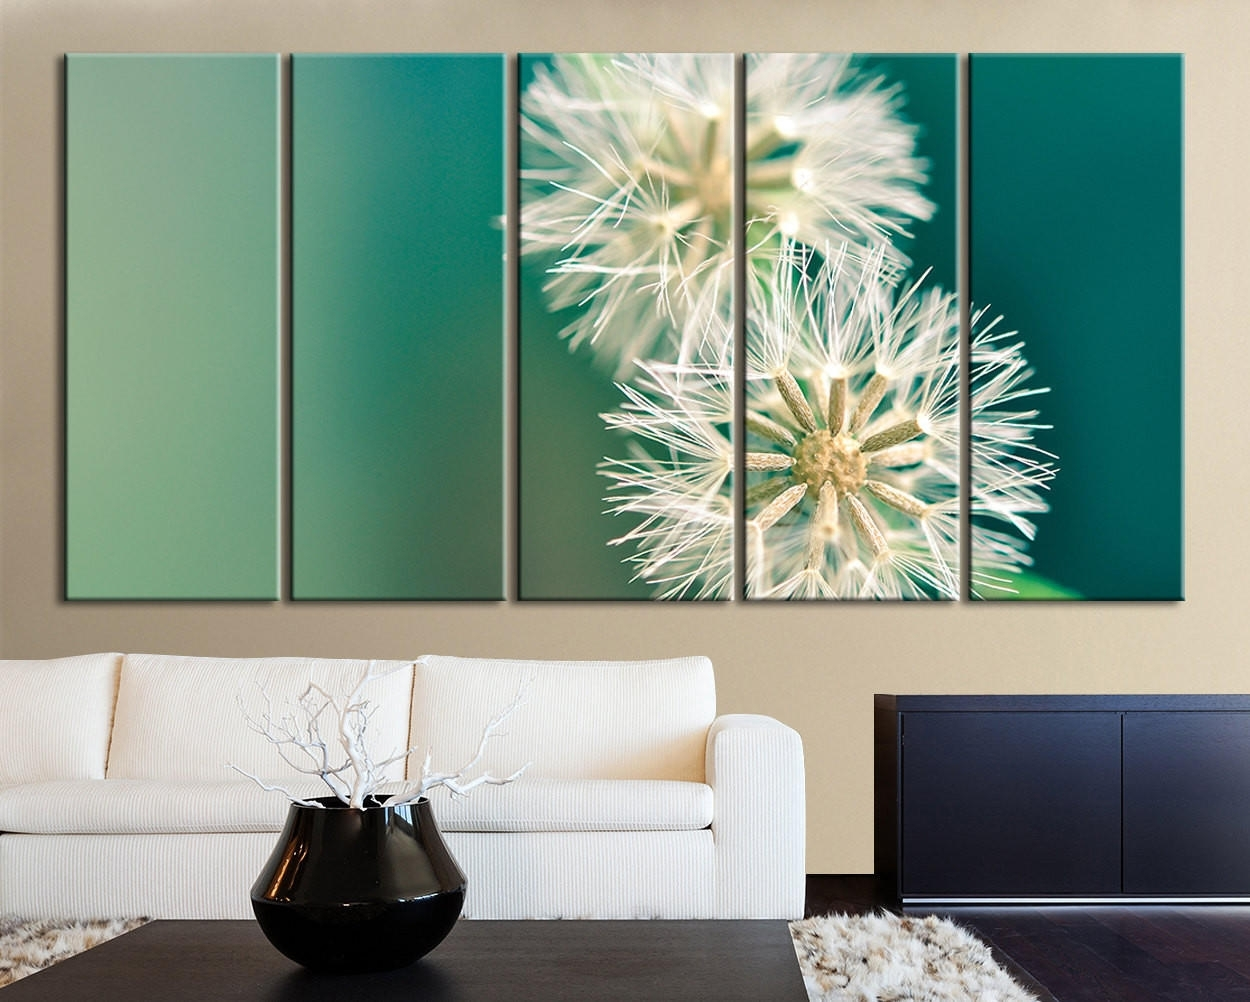 Xxl 5 Panel Wall Art Canvas Print From Mycanvasprint Within Most Recent Dandelion Canvas Wall Art (View 15 of 15)